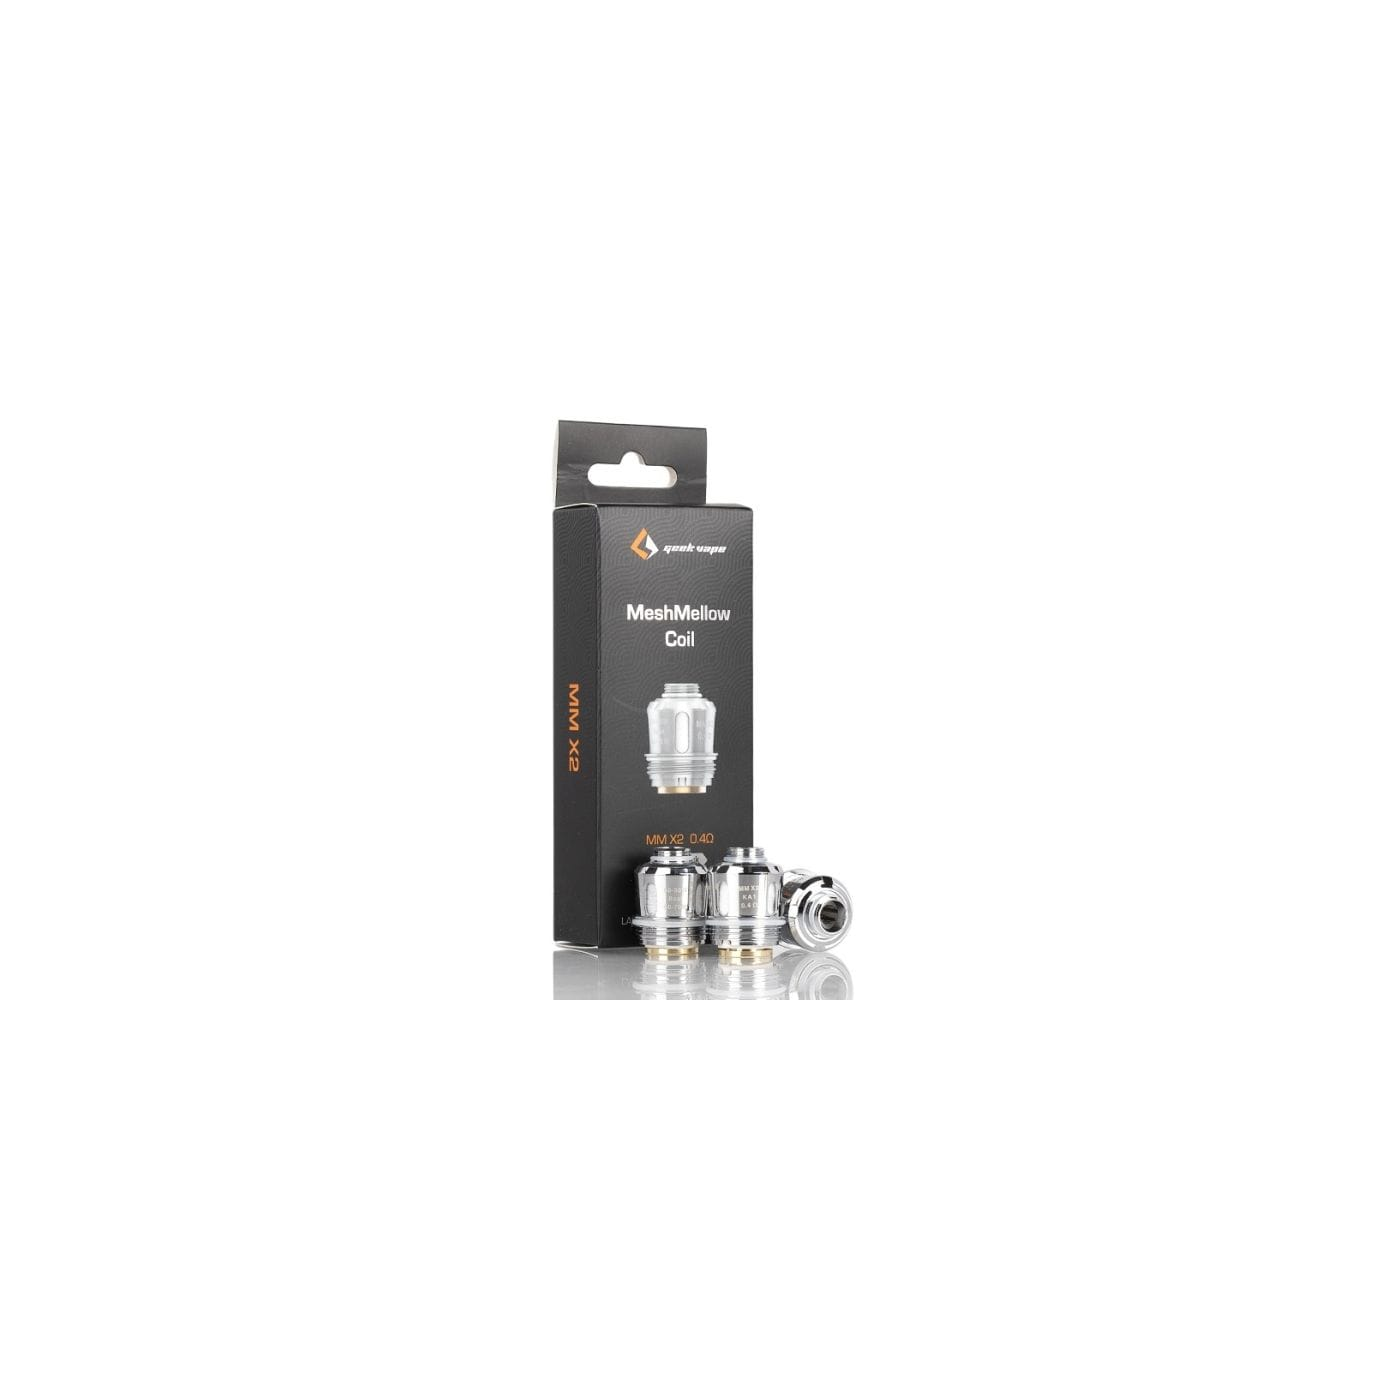 GeekVape Aegis Mesh Mellow X2 Replacement Coil - 3 Pack